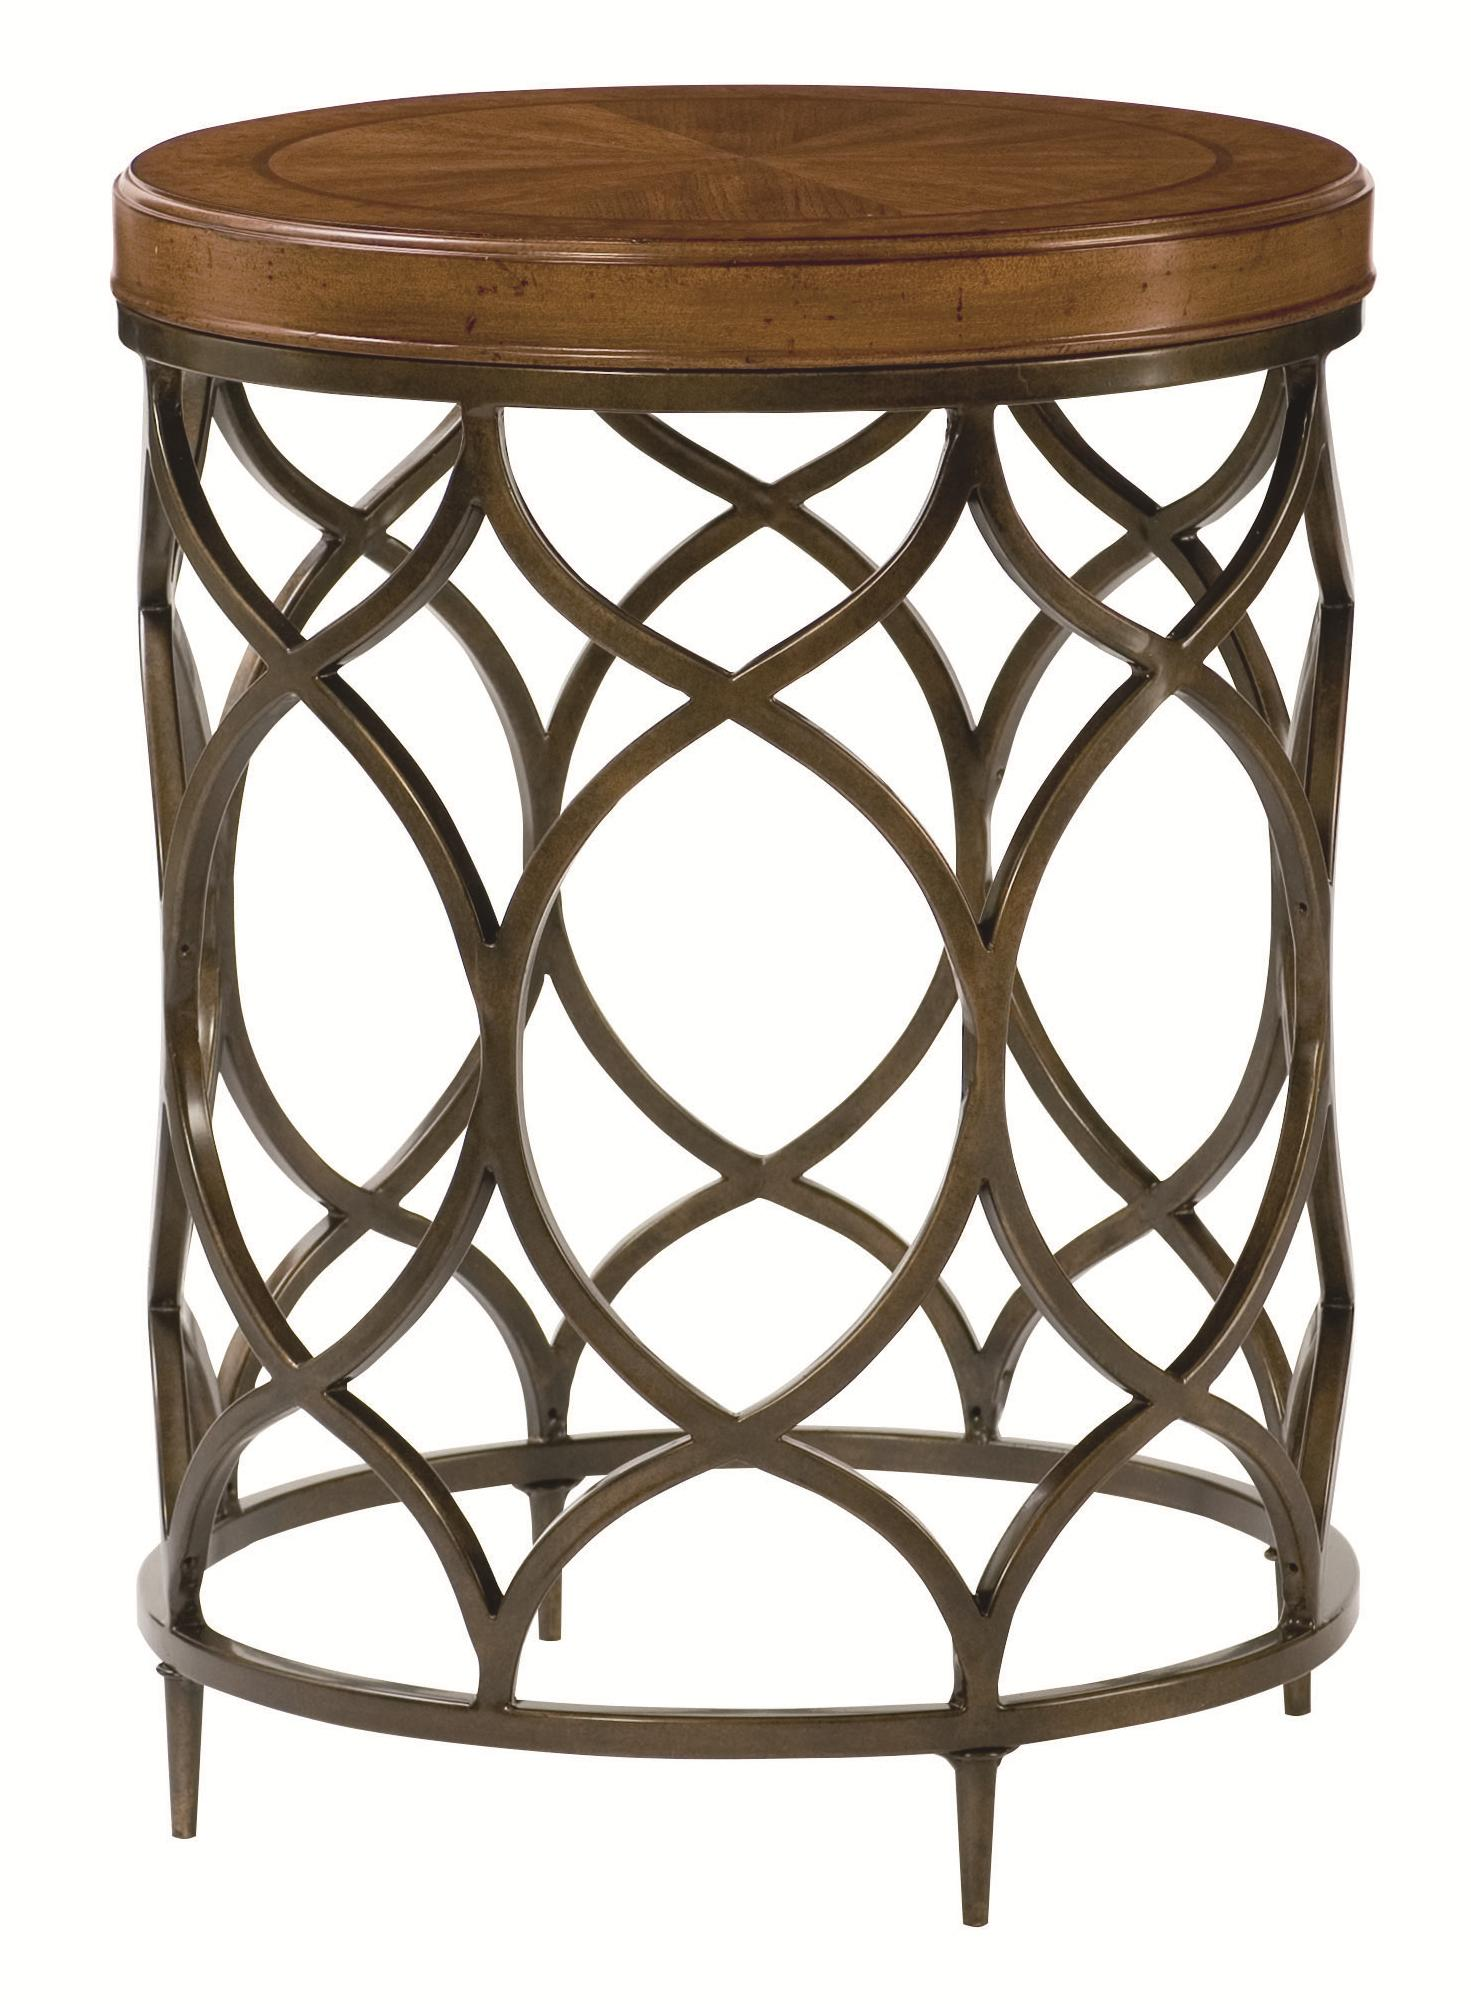 Hammary Hidden Treasures Round Lamp Table - Item Number: 090-571